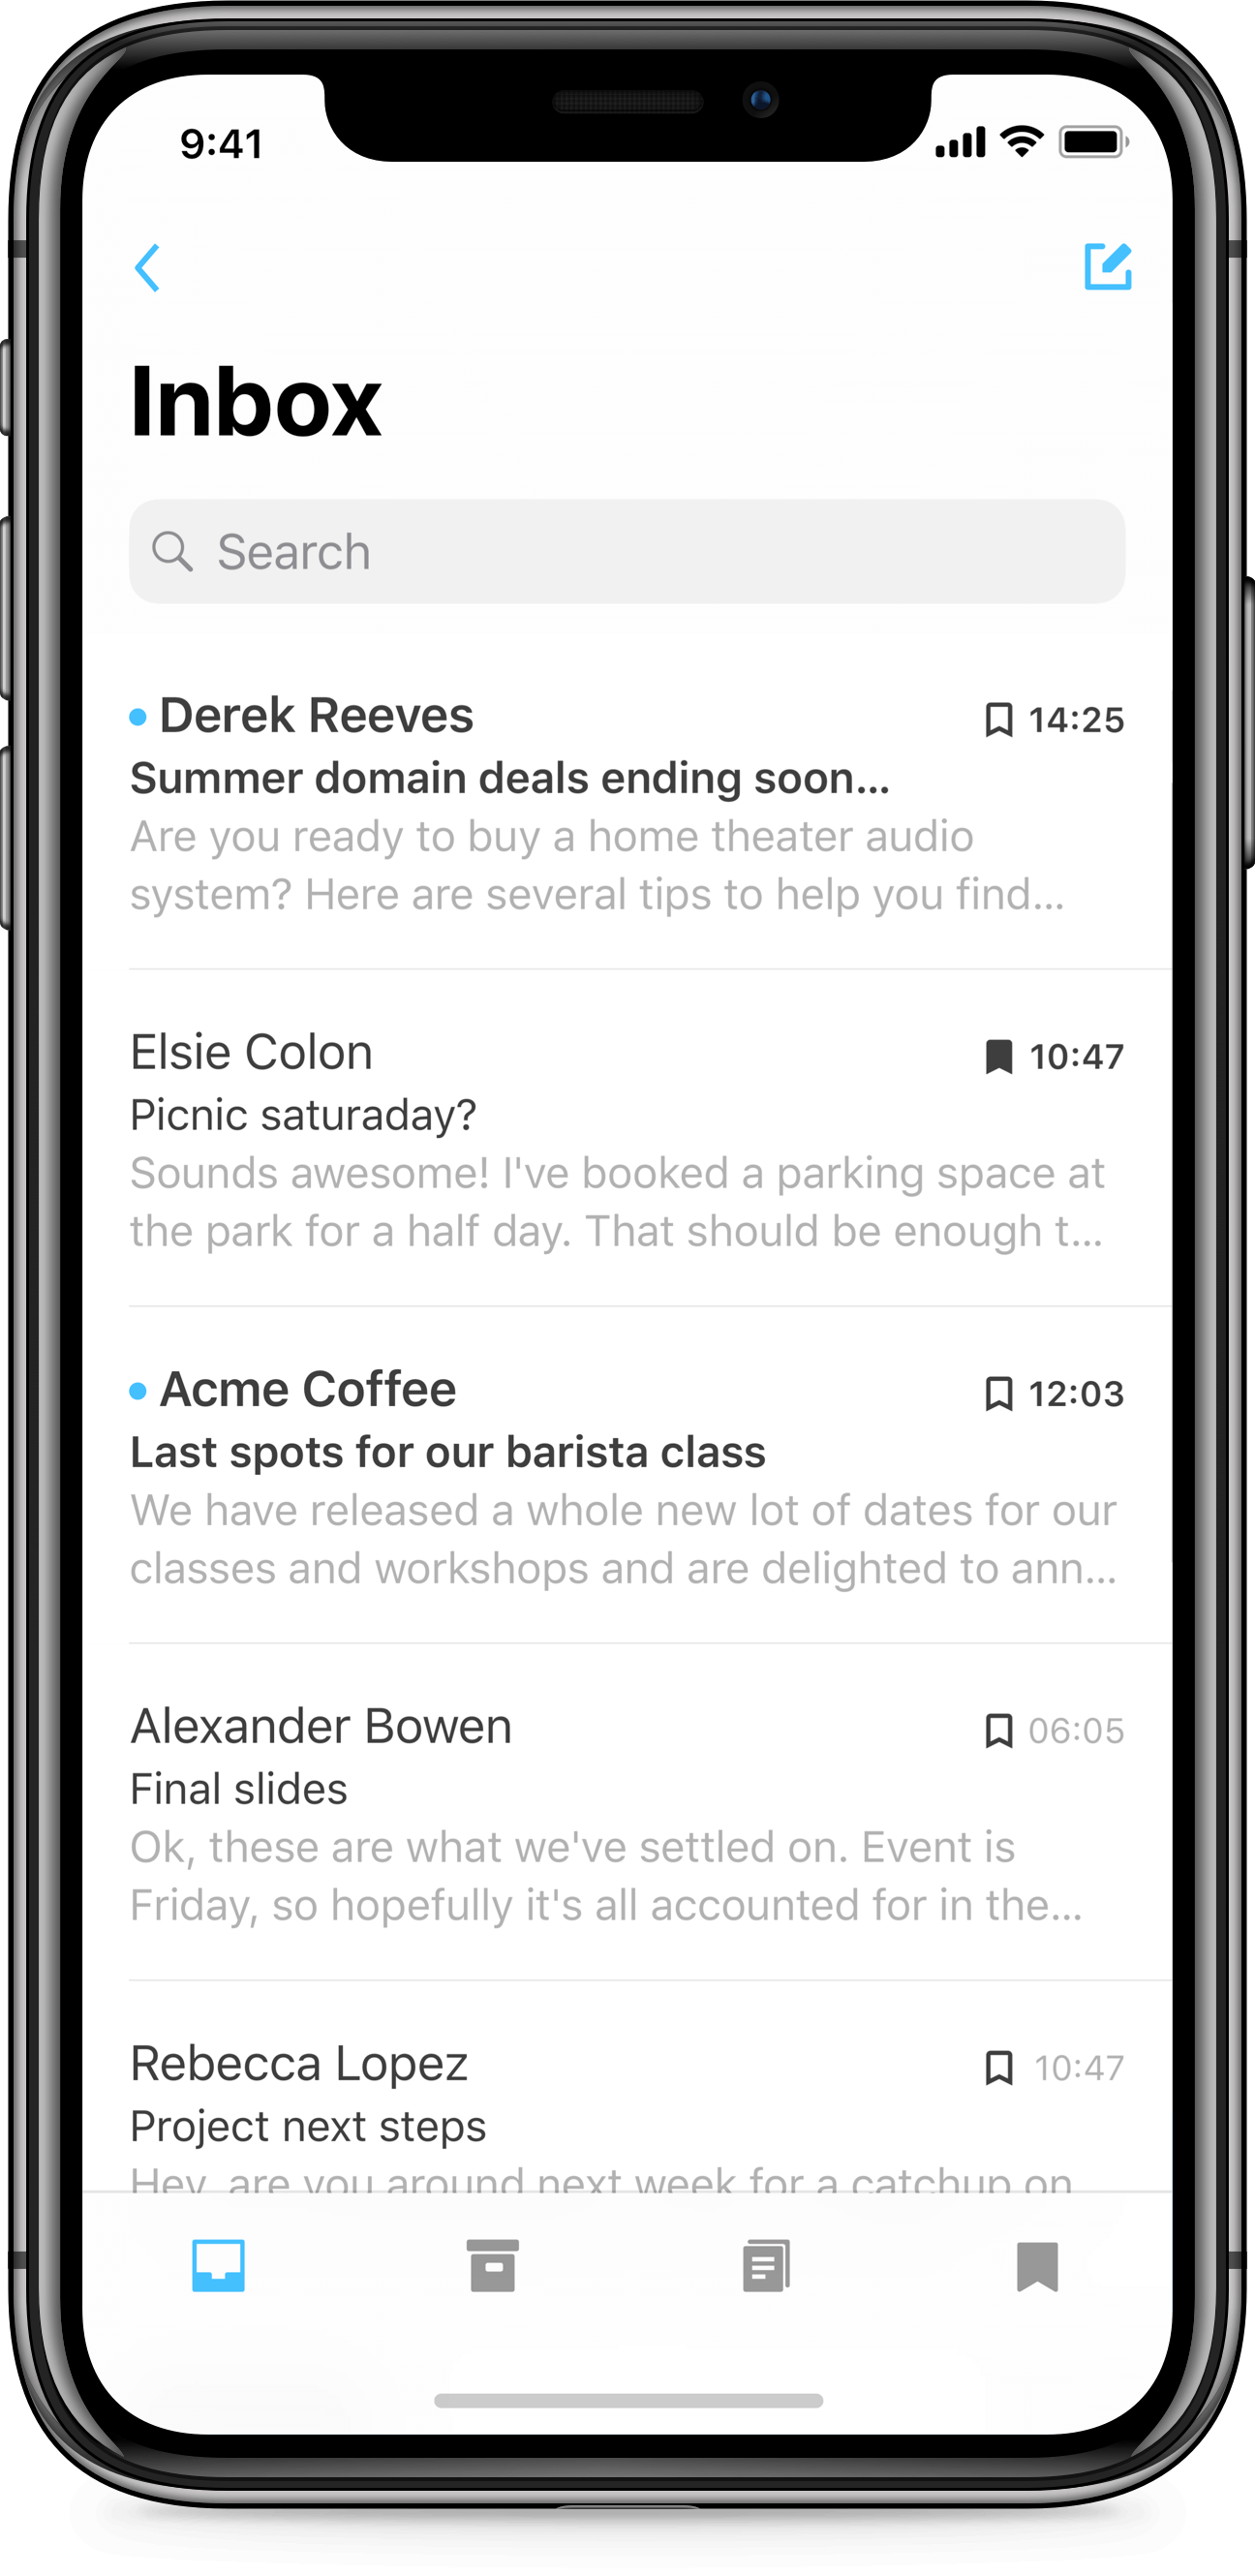 iPhone X app design of Mail Simple email client for iOS. Native inbox list of emails and tab bar.